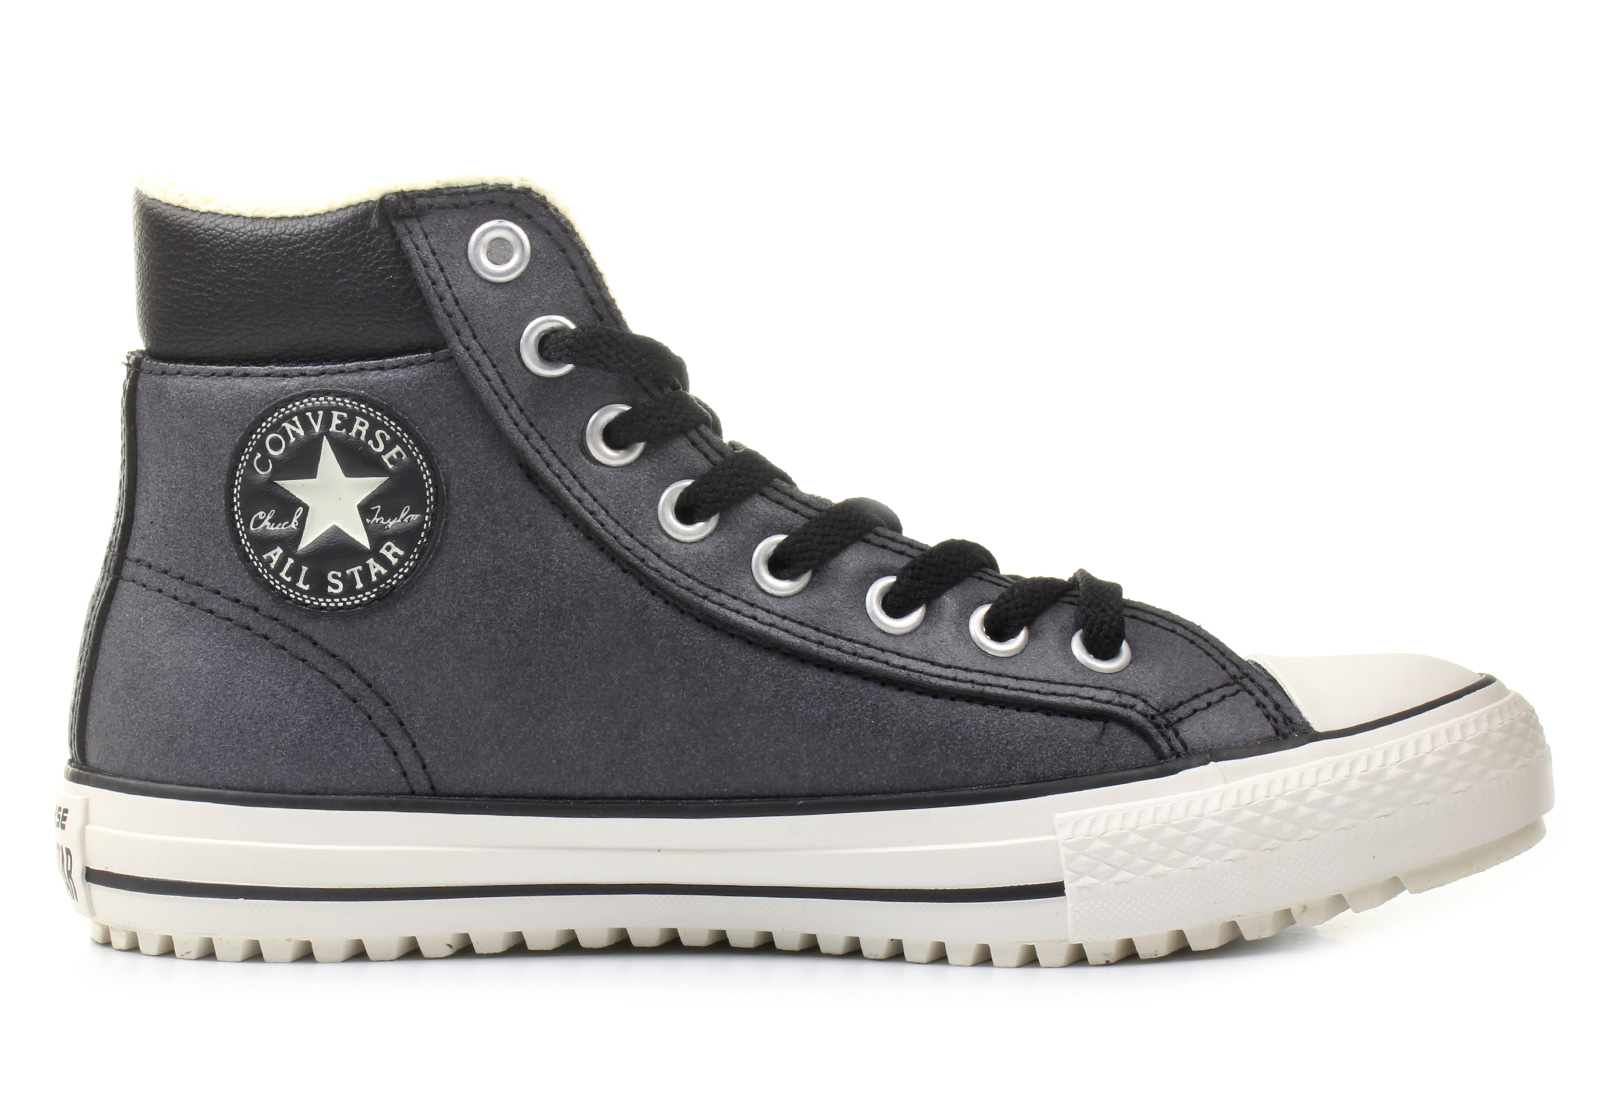 Converse Sneakers - Chuck Taylor All Star Converse Boot Pc ...